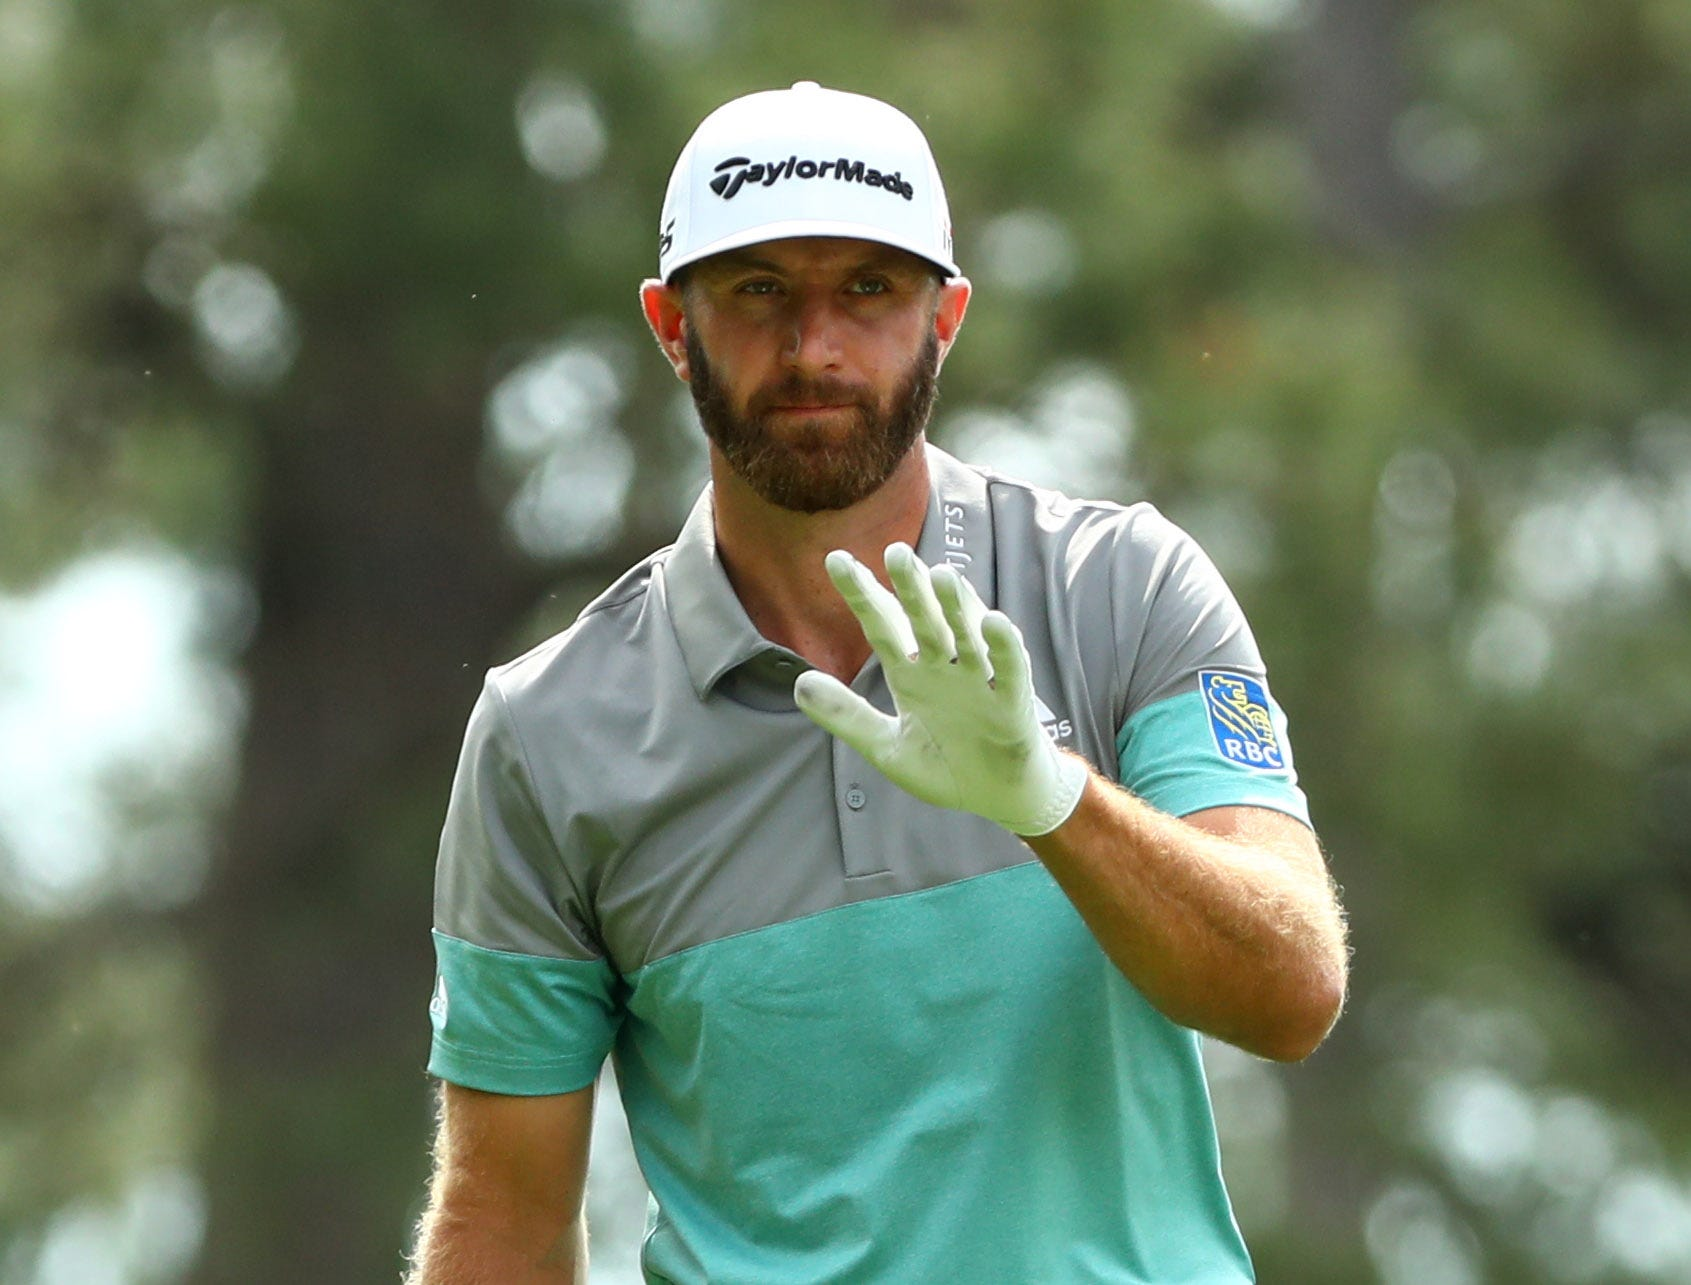 Apr 12, 2019; Augusta, GA, USA; Dustin Johnson reacts after hitting his tee shot on the 4th hole during the second round of The Masters golf tournament at Augusta National Golf Club. Mandatory Credit: Rob Schumacher-USA TODAY Sports